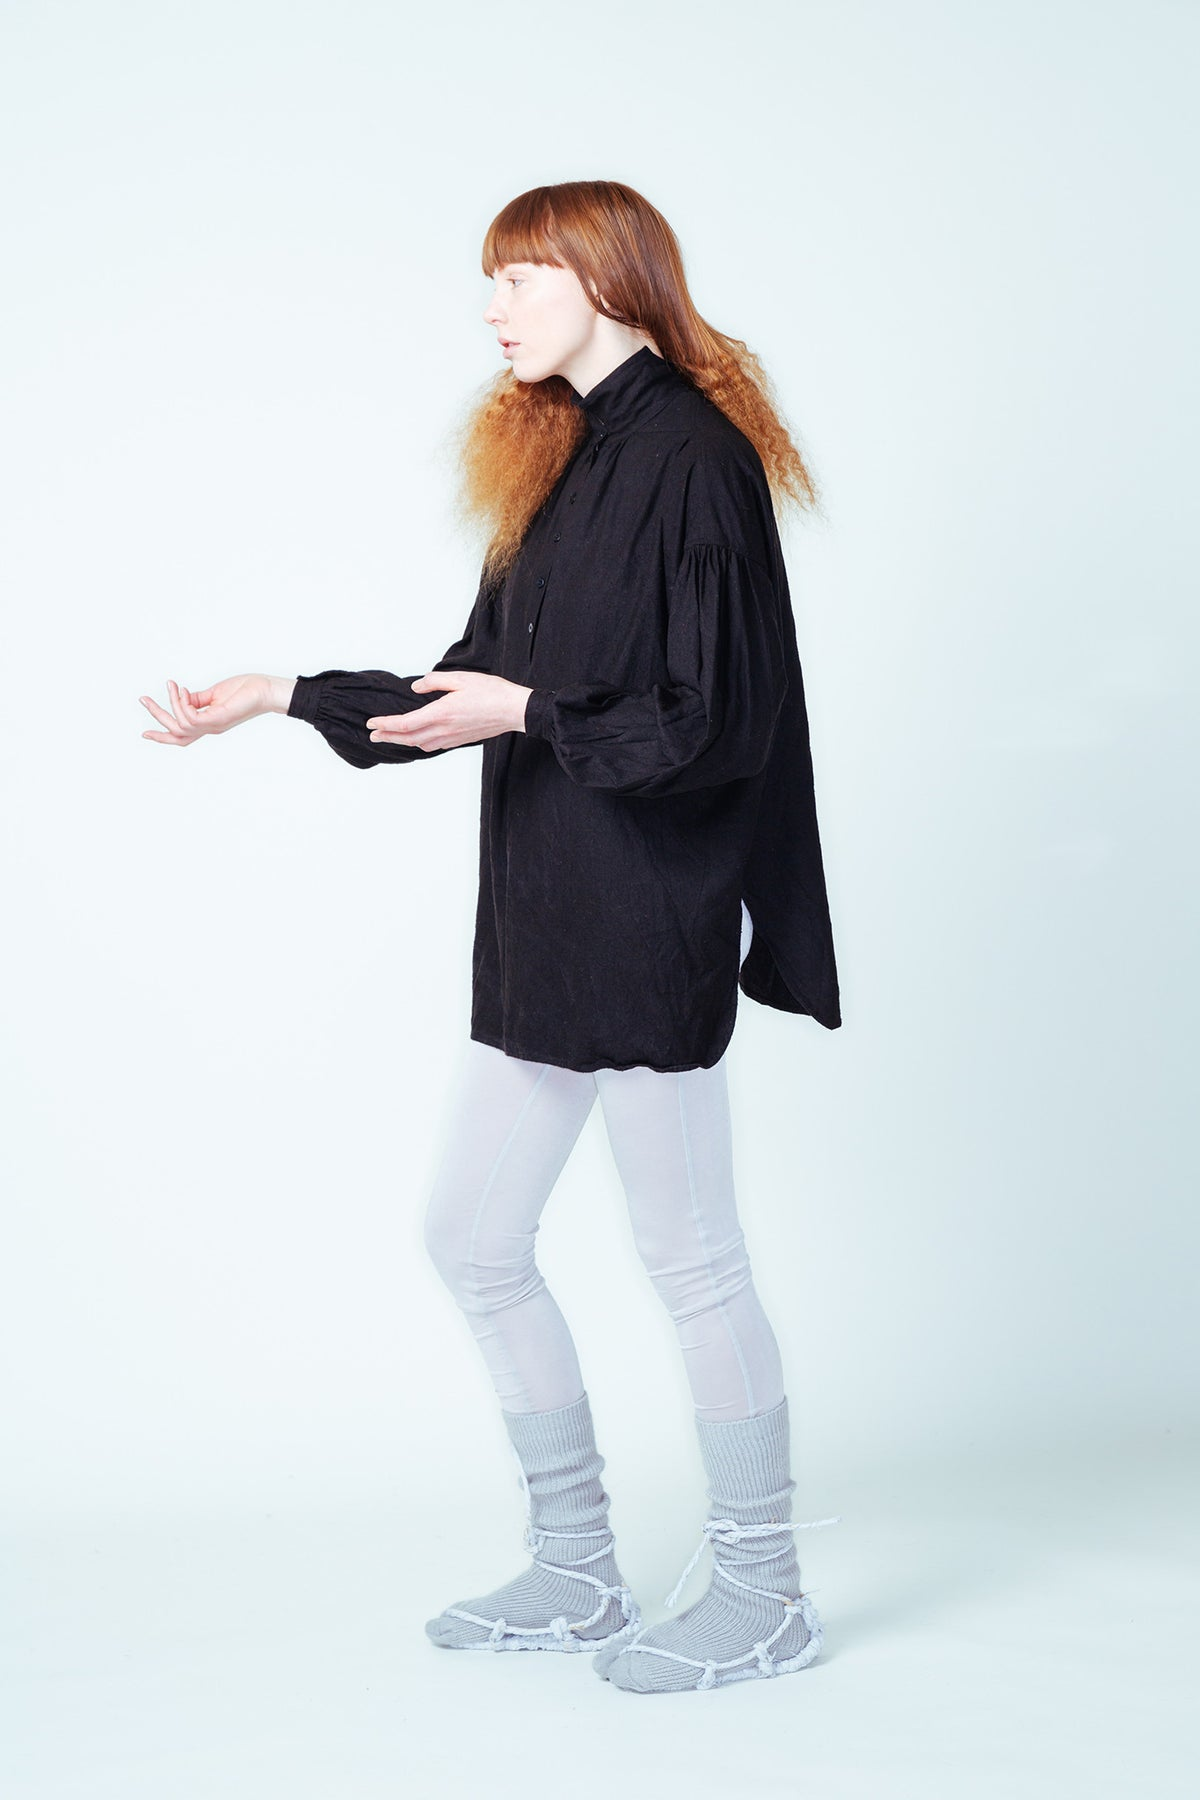 Lela Jacobs Worker Shirt black linen new zealand made auckland stockist